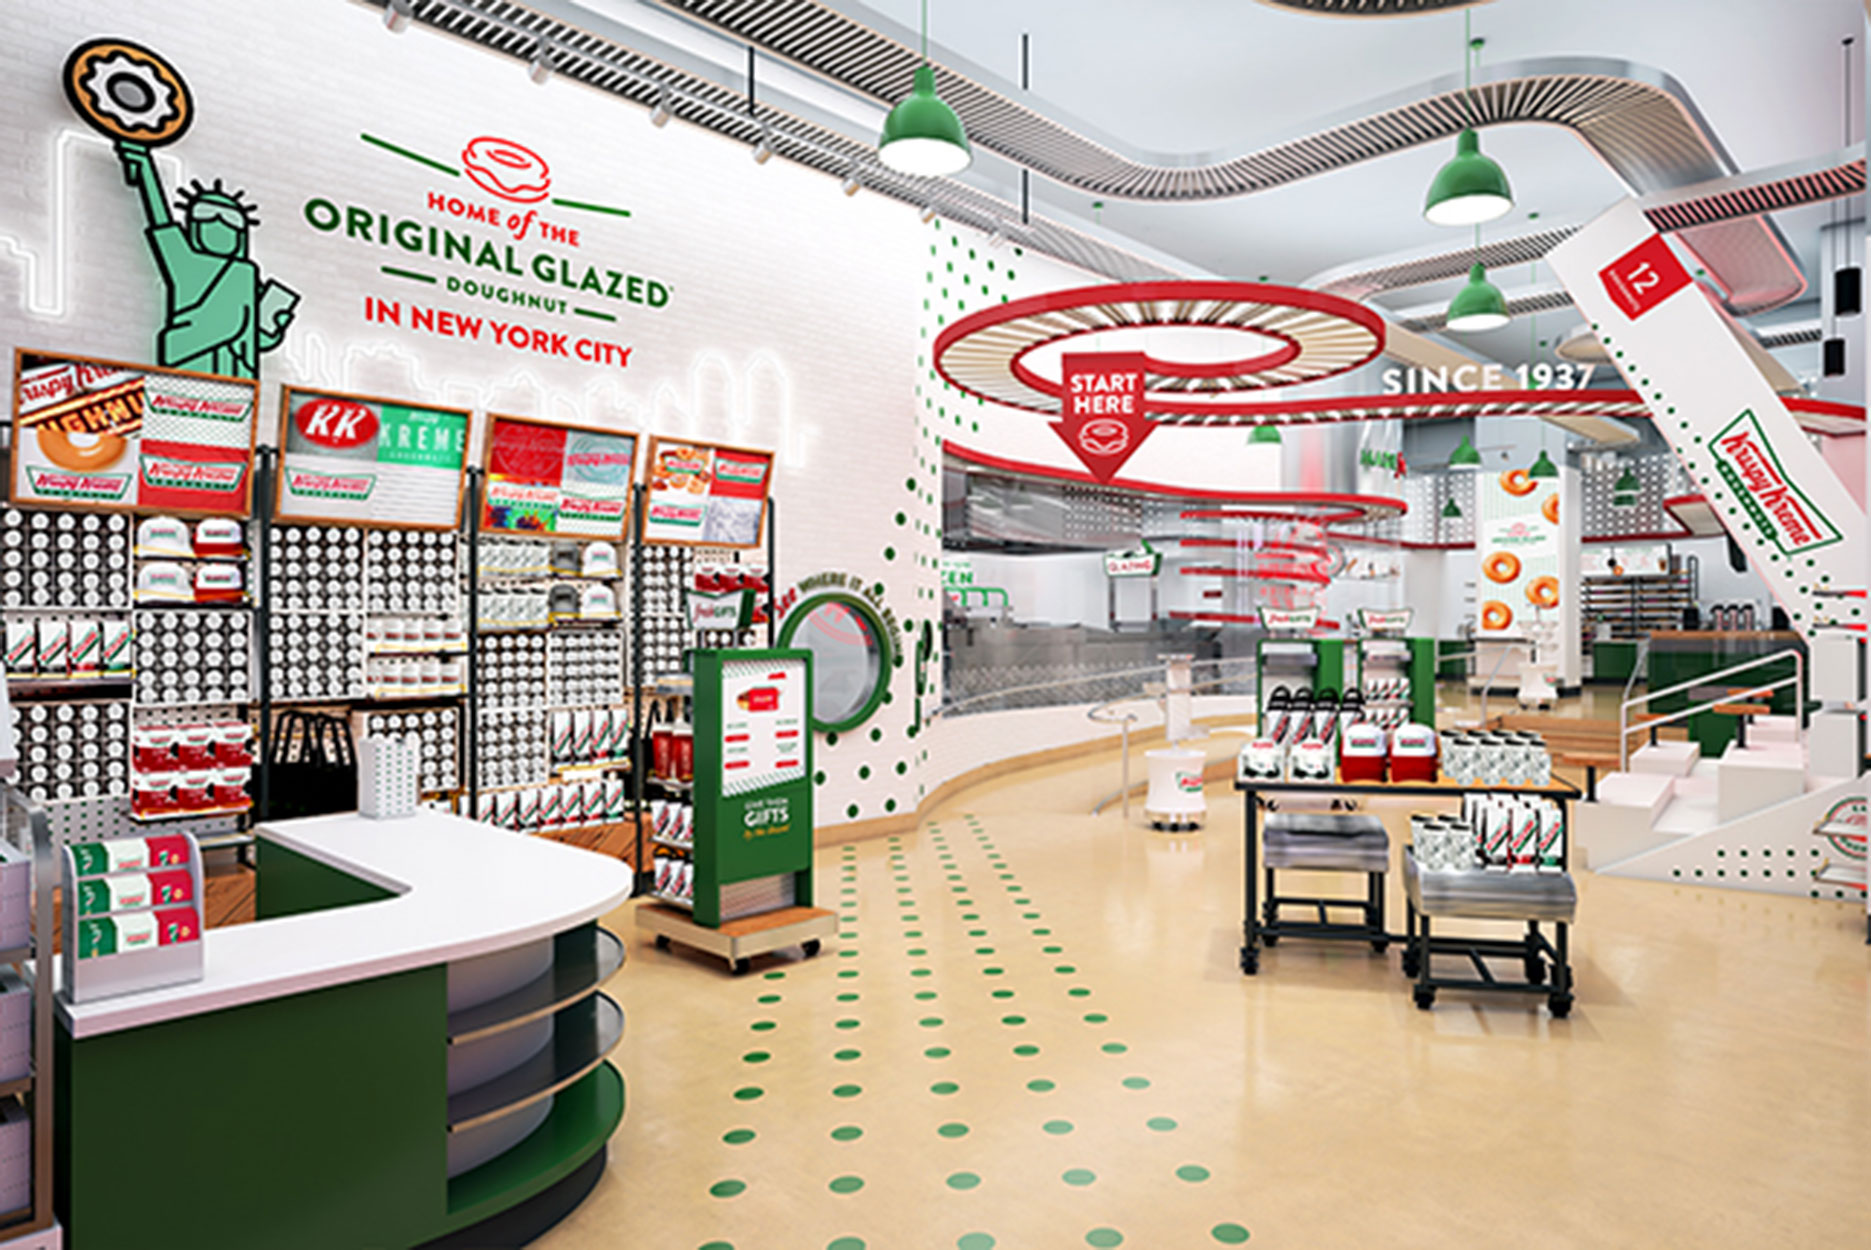 A rendering of the interior of the Krispy Kreme store in Times Square